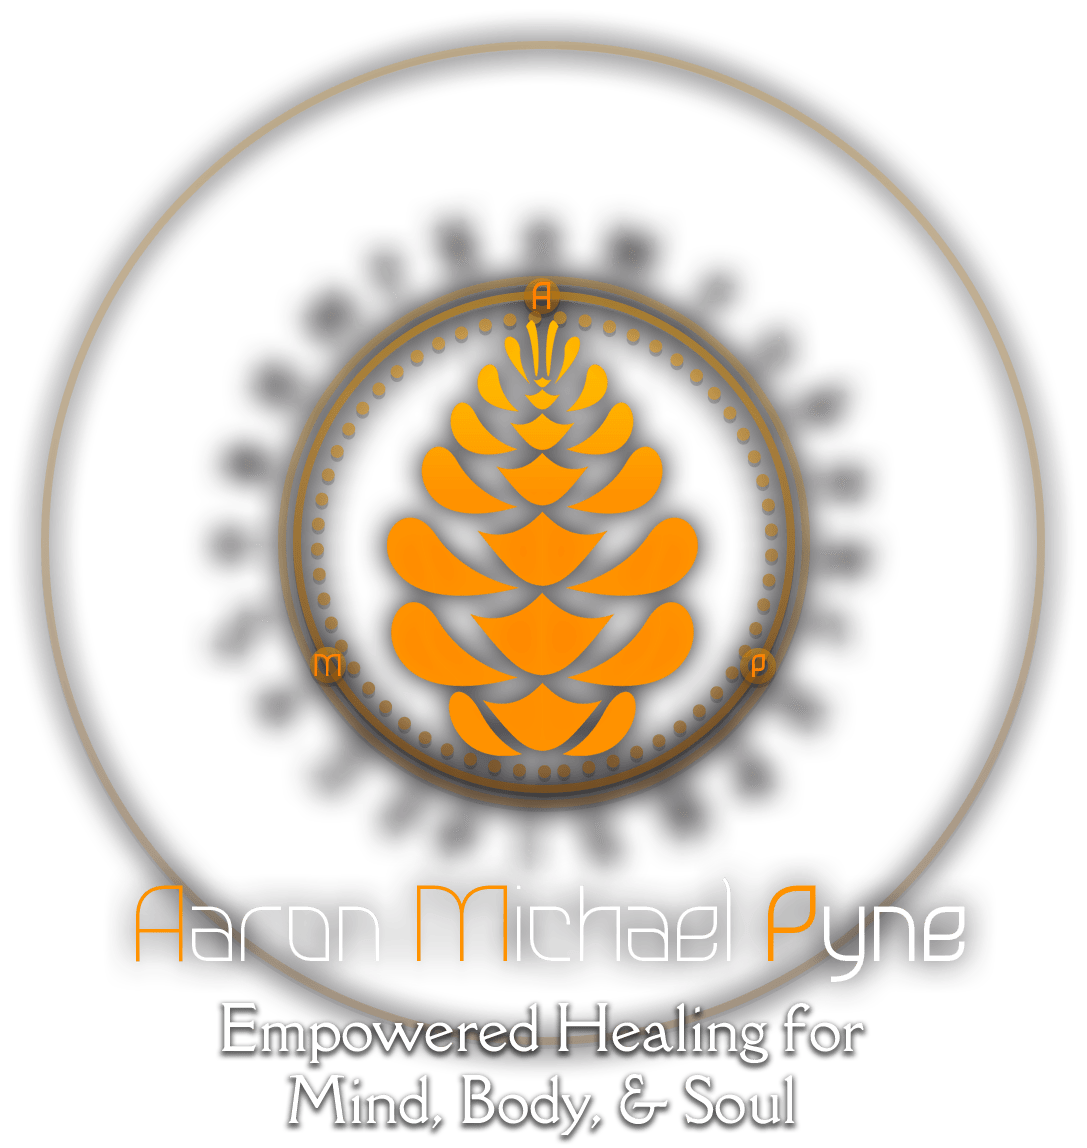 Aaron Michael Pyne - AMPlify Your Potential